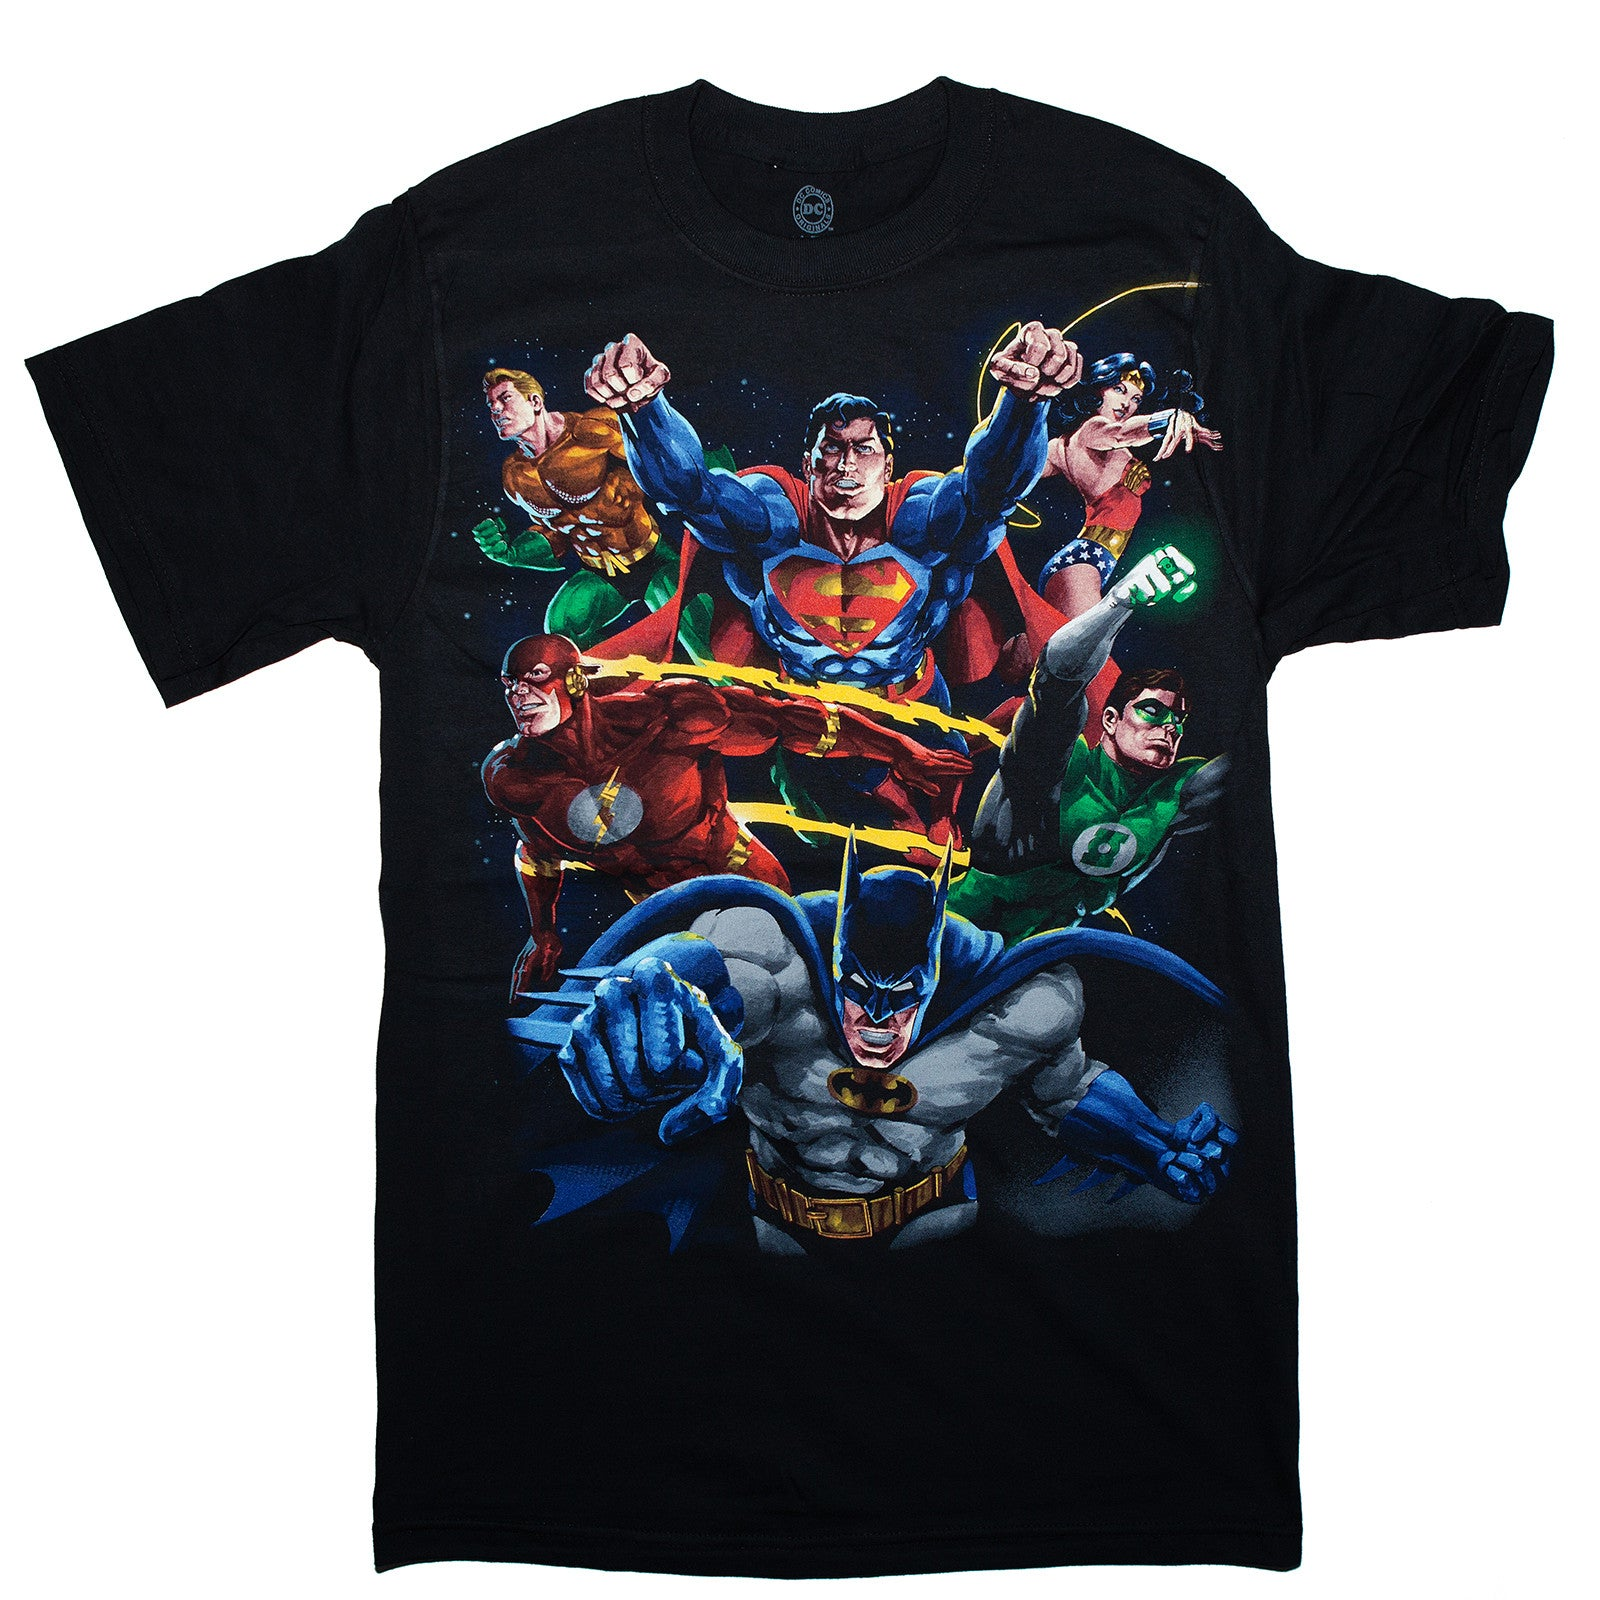 DC Comics T-Shirt Justice League 100% Cotton Tee. S to 3XL men's sizes.